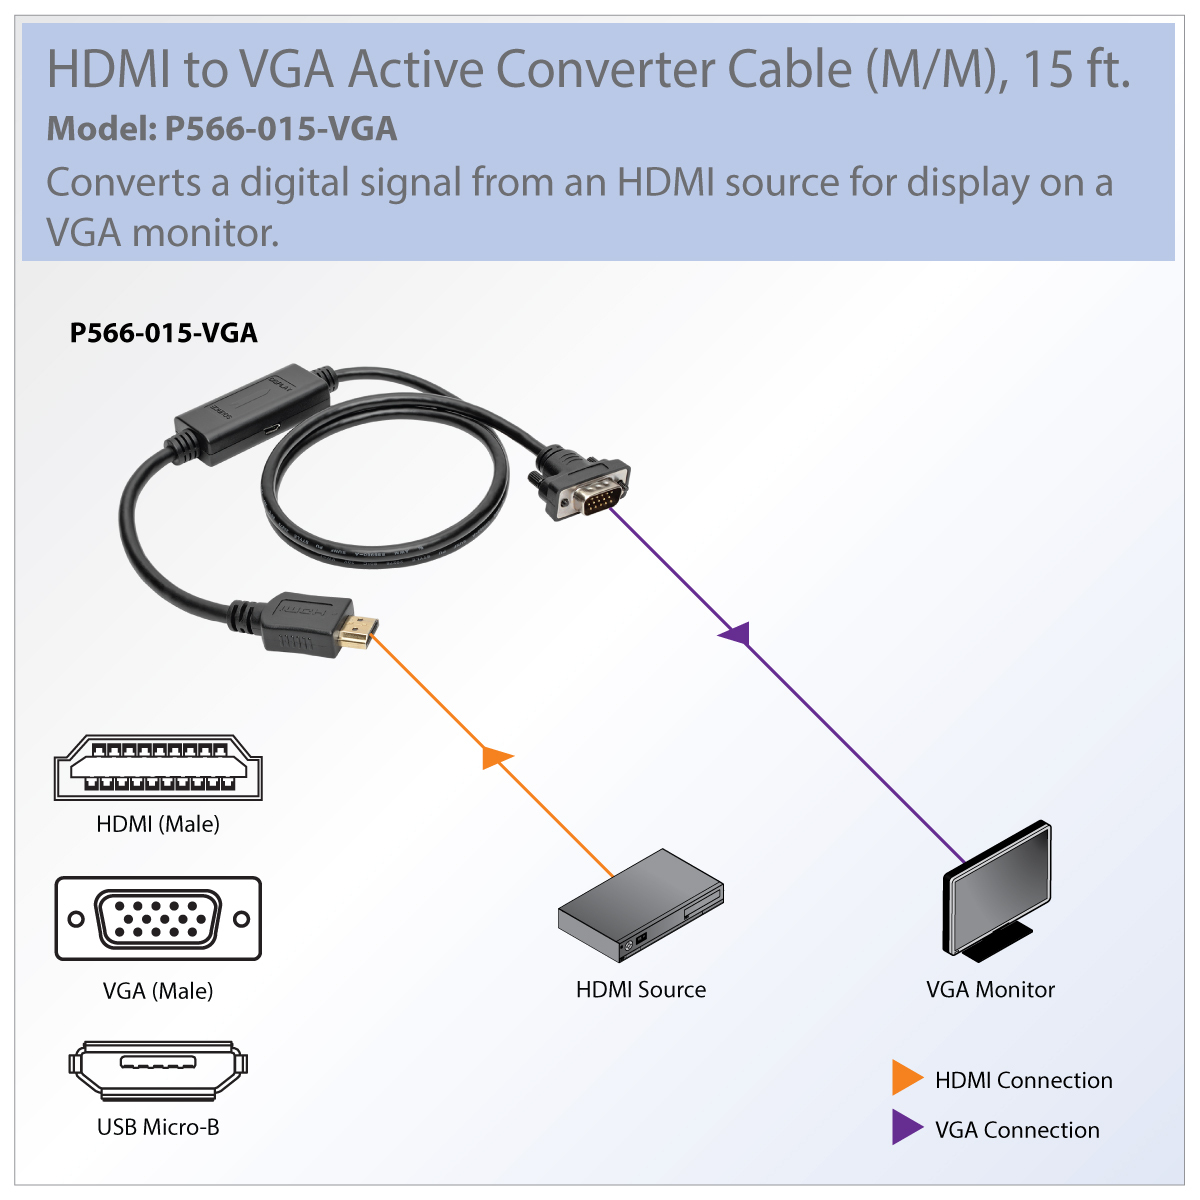 Tripp Lite Hdmi To Vga Adapter Converter Cable Active M/m 1080P - Vga To Usb Cable Wiring Diagram